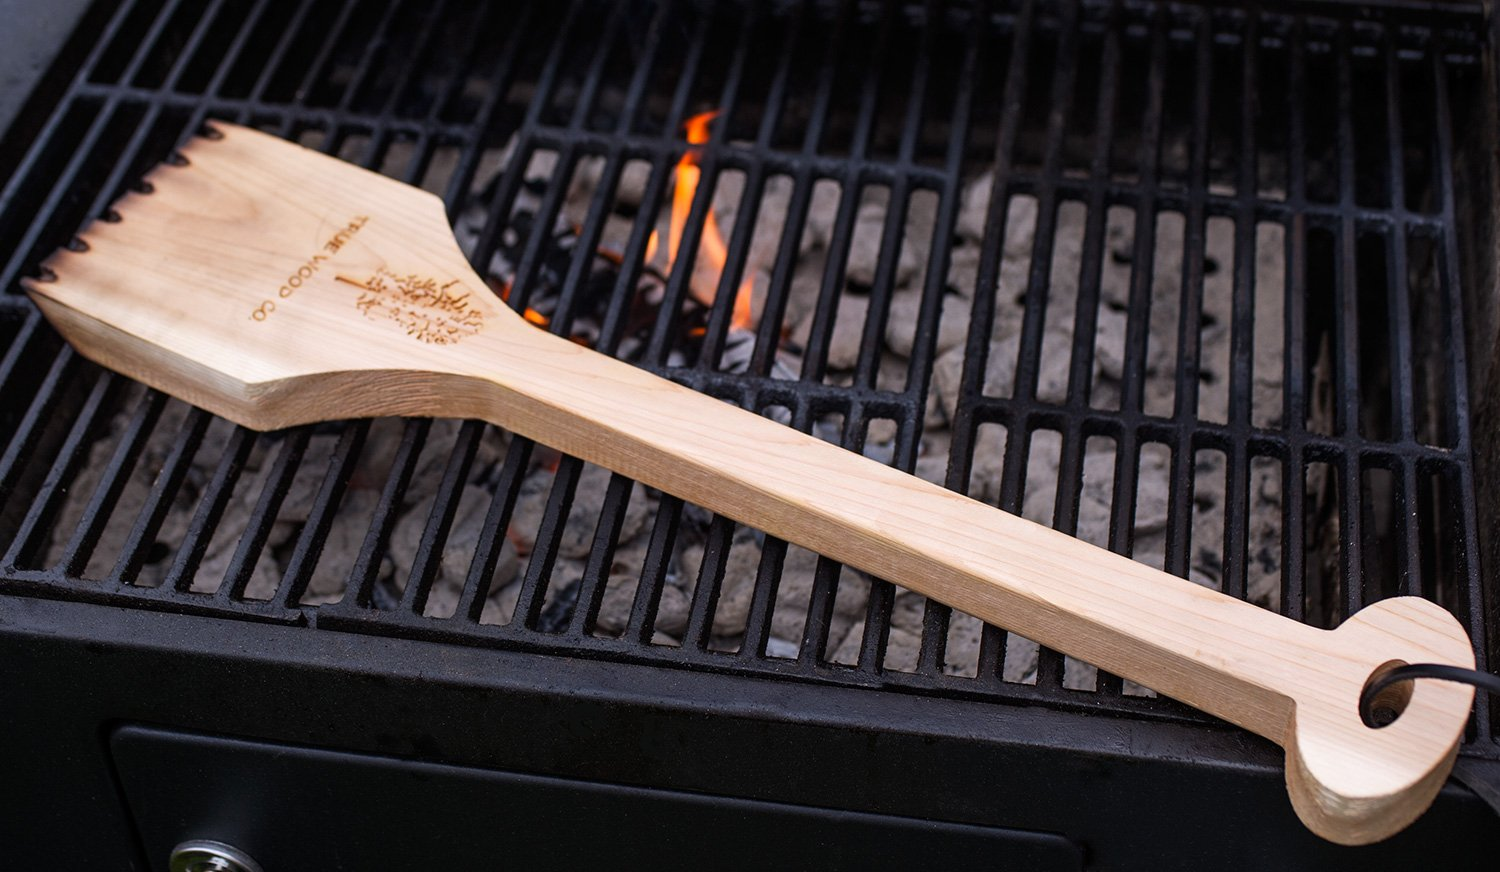 Wooden BBQ Scraper for Grill Cleaning. Safe Alternative to Wire BBQ Brushes. Extra Long Handle for Safety and Comfort. Professional Bristle Free Cleaner. West Red Cedar Wood. (21.5'') by True Wood Co. (Image #6)